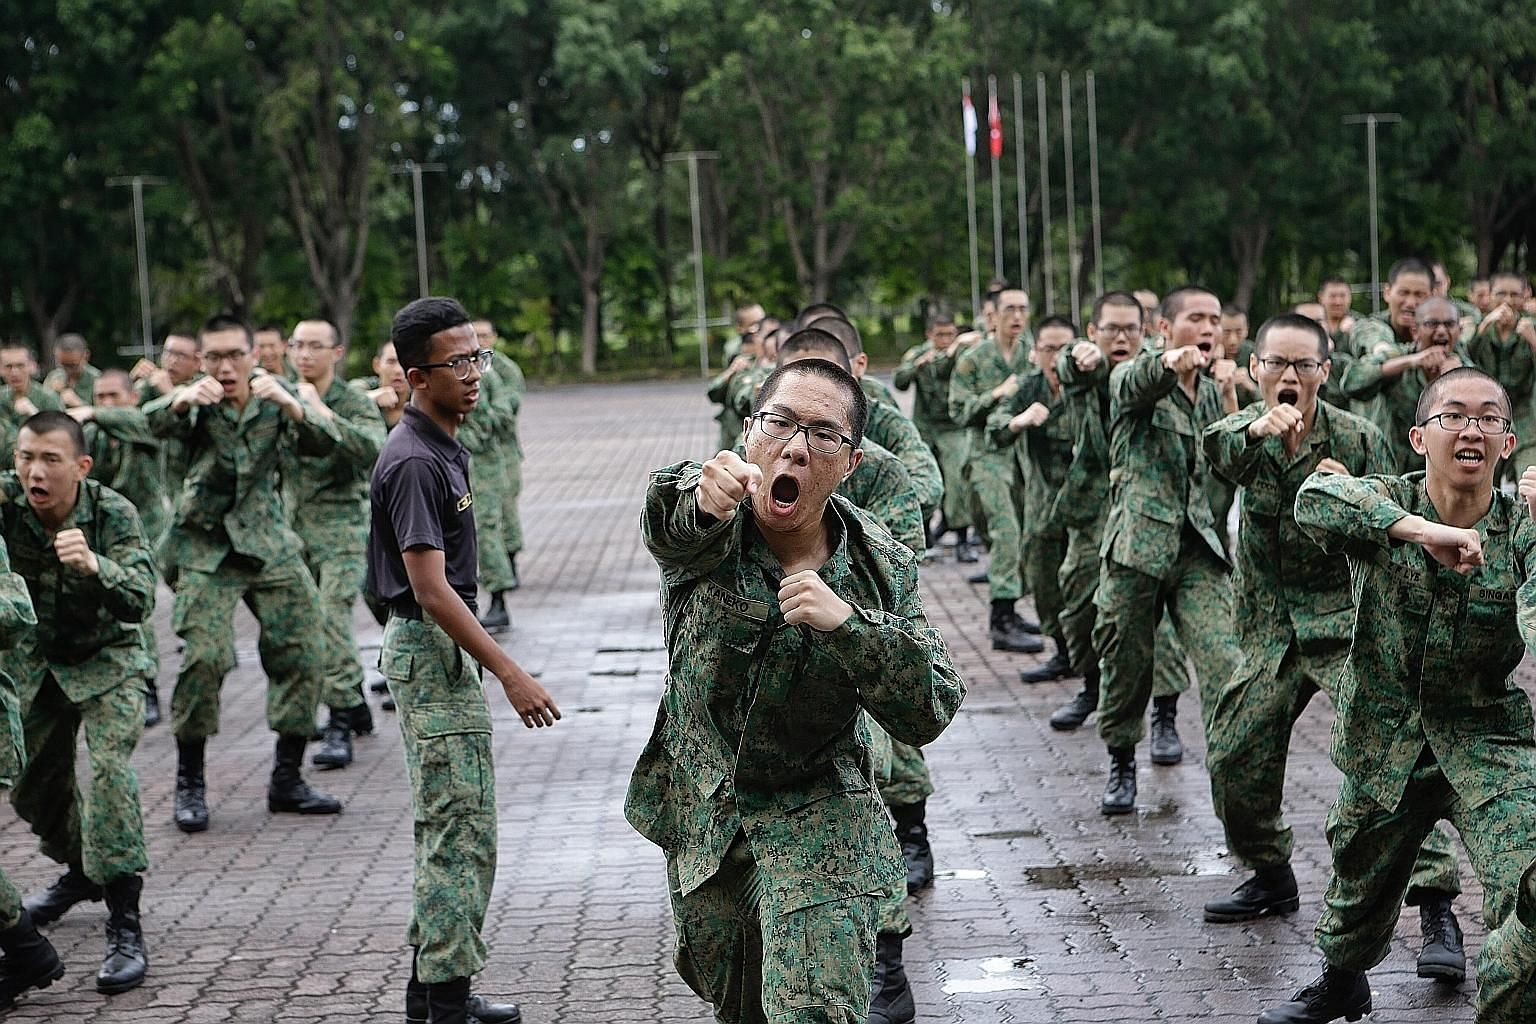 Recruits at the Basic Military Training Centre on Pulau Tekong last year. The latest batch of Singapore Armed Forces army recruits were unable to complete the required build-up training in time for the usual 24km graduation march after a two-week saf